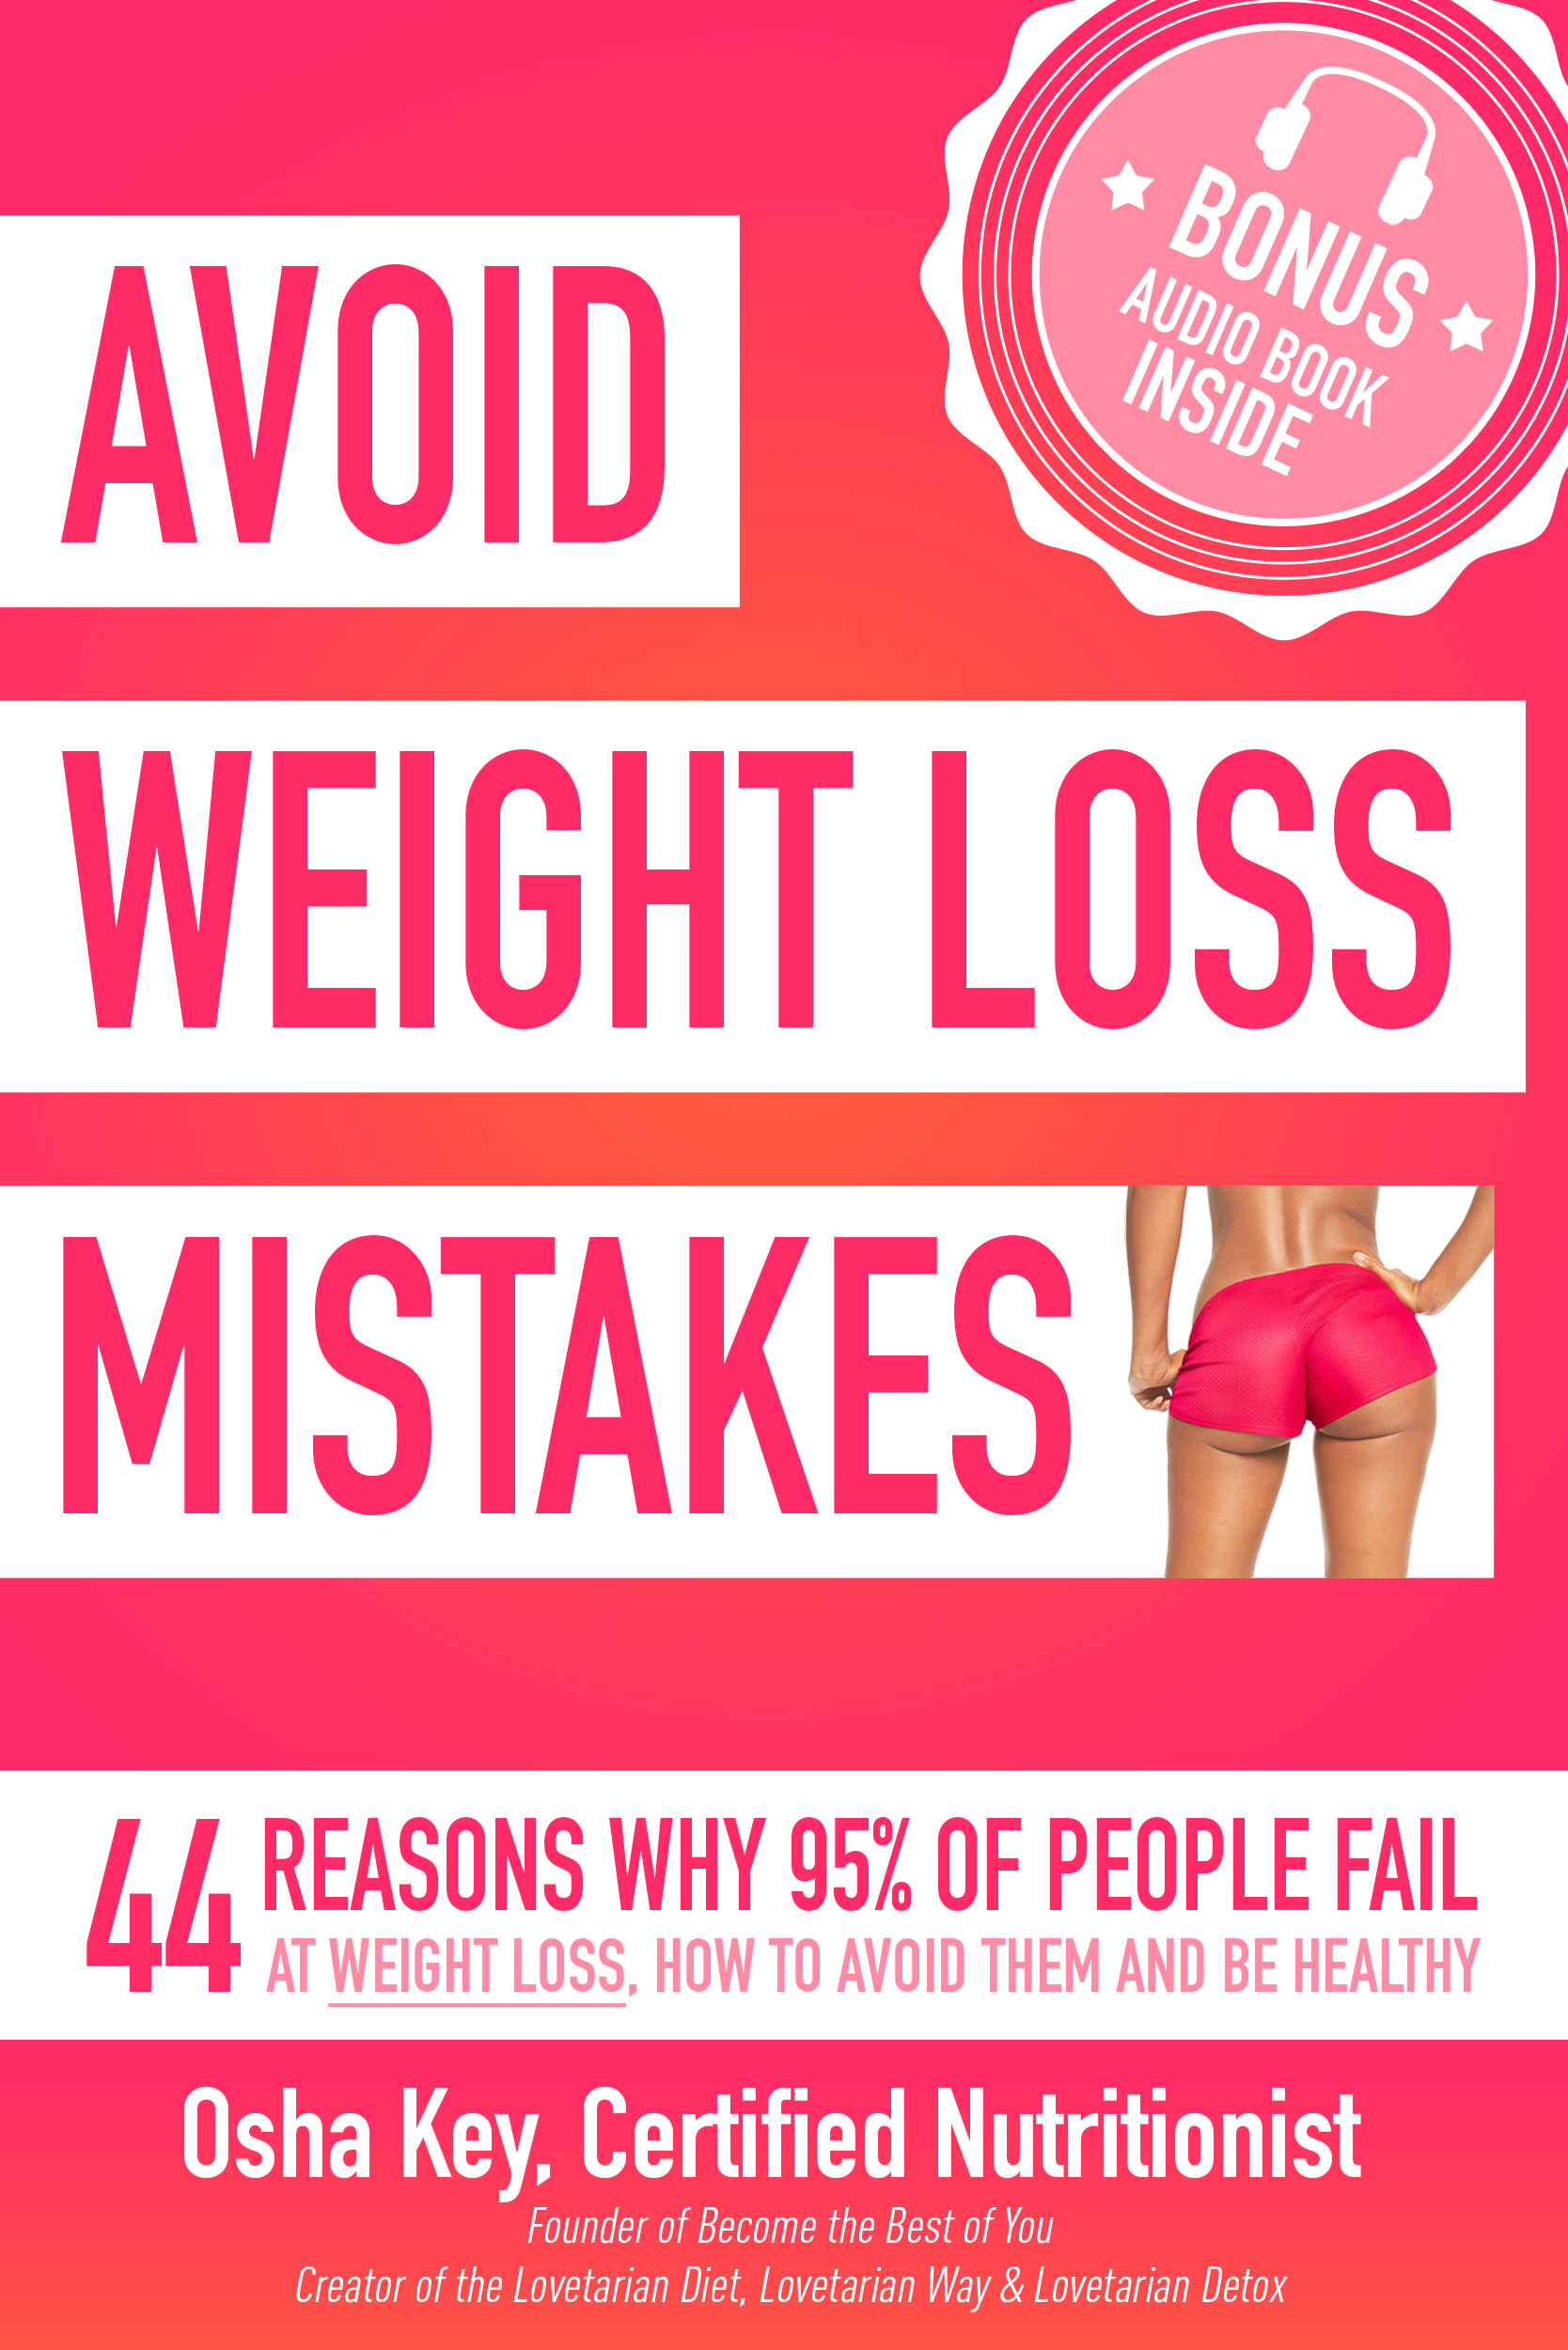 Avoid Weight Loss Mistakes. 44 Reasons Why 95% of People Fail at Weight Loss, How to Avoid Them and Be Healthy  by  Osha Key